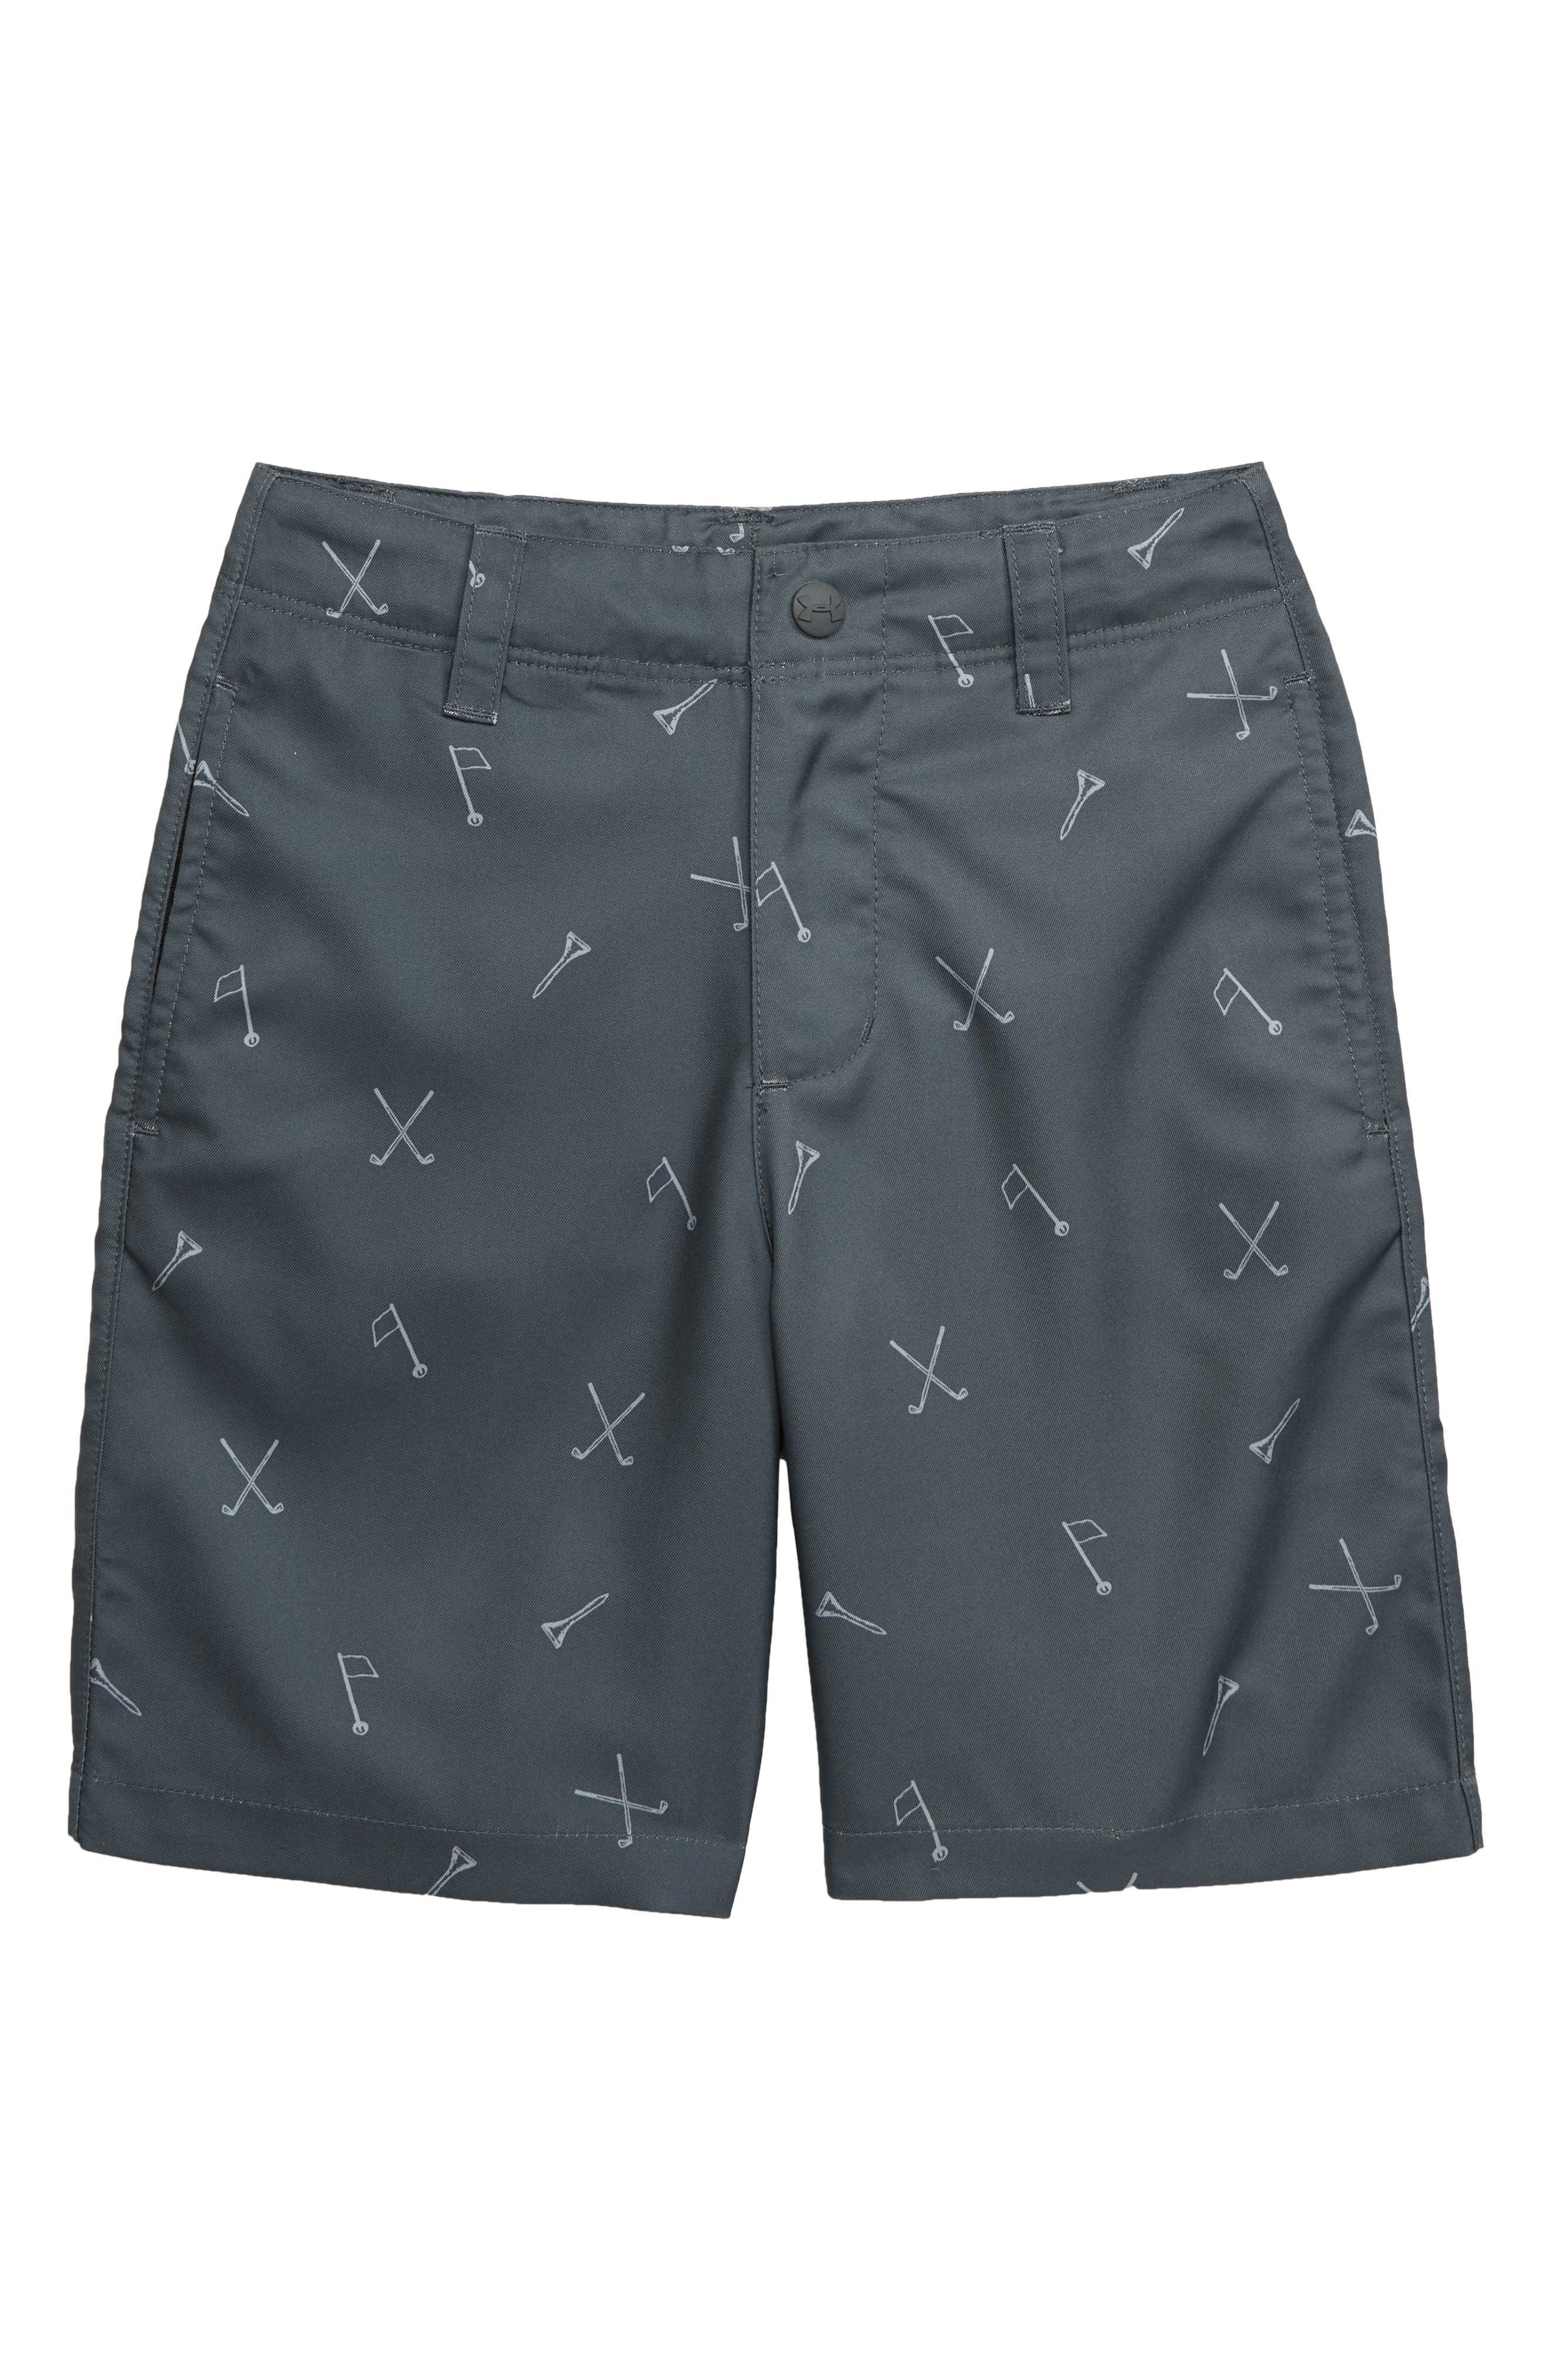 UNDER ARMOUR Golf Icons HeatGear<sup>®</sup> Golf Shorts, Main, color, 022